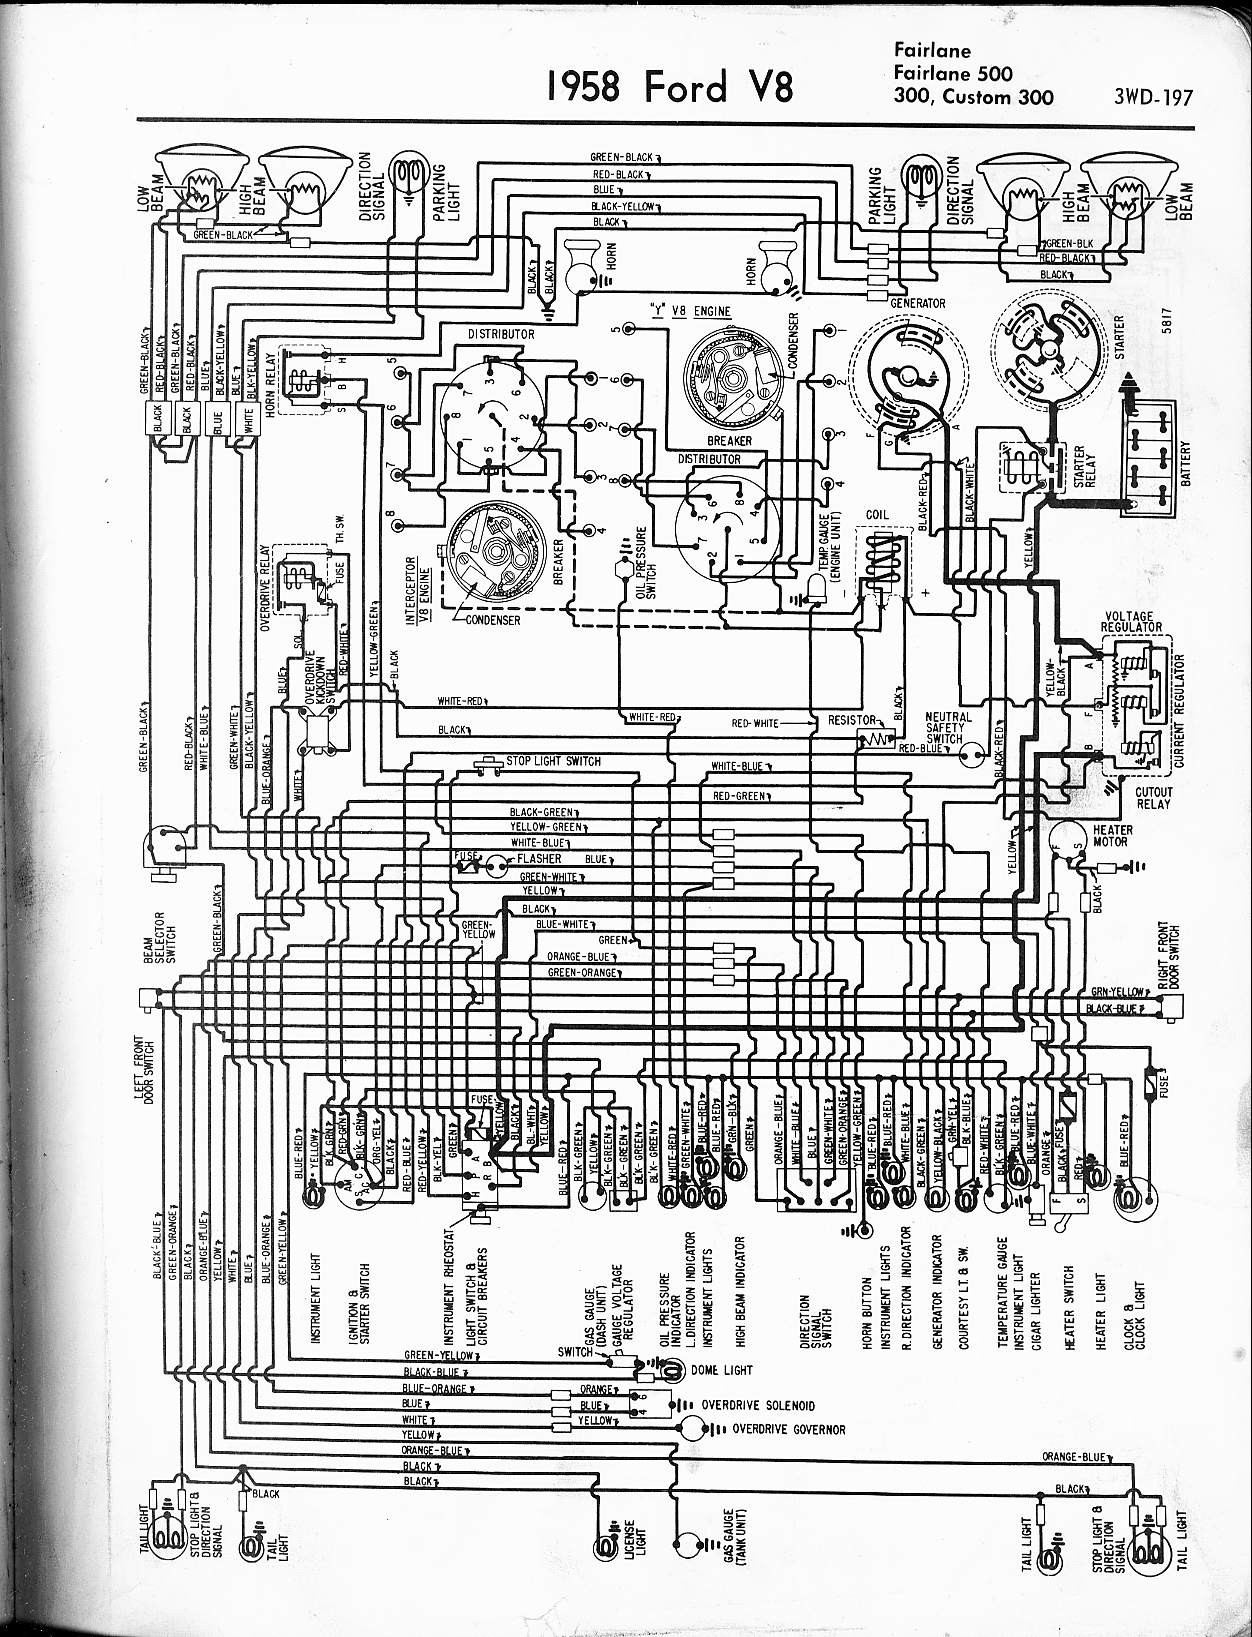 1965 Ford Ignition Wiring Diagram 1974 Ford Electronic Ignition ...